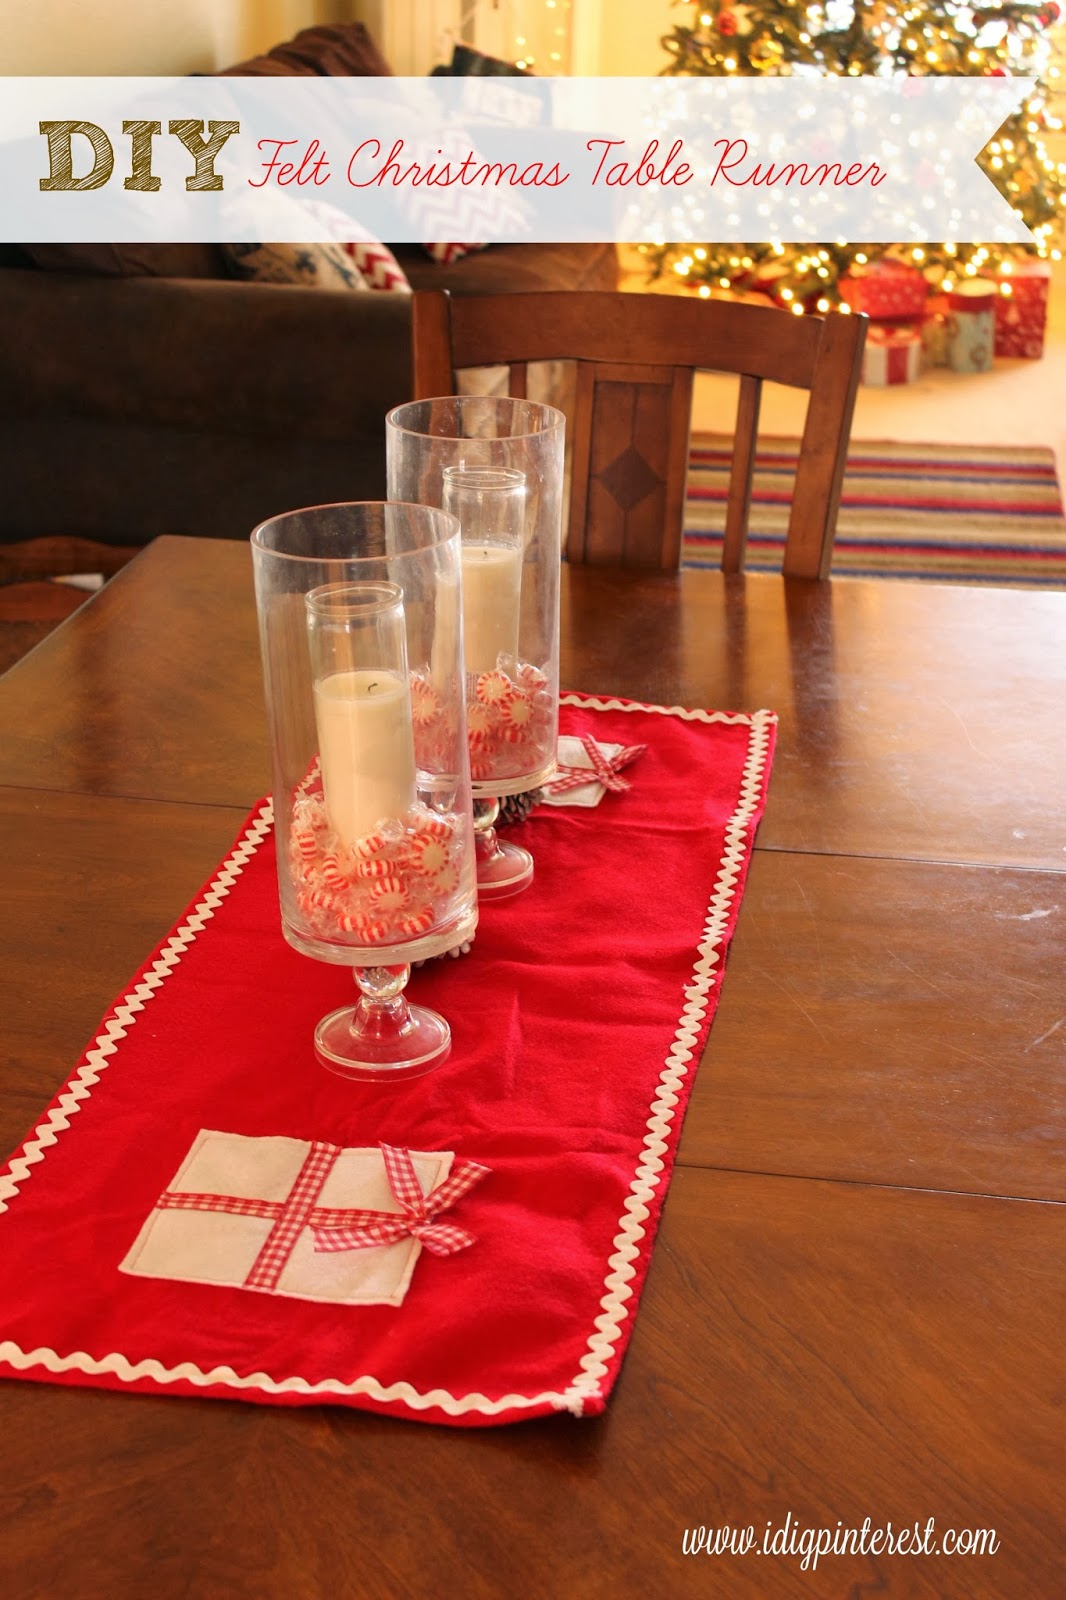 Christmas Table Runner Diy.Diy Felt Christmas Table Runner I Dig Pinterest